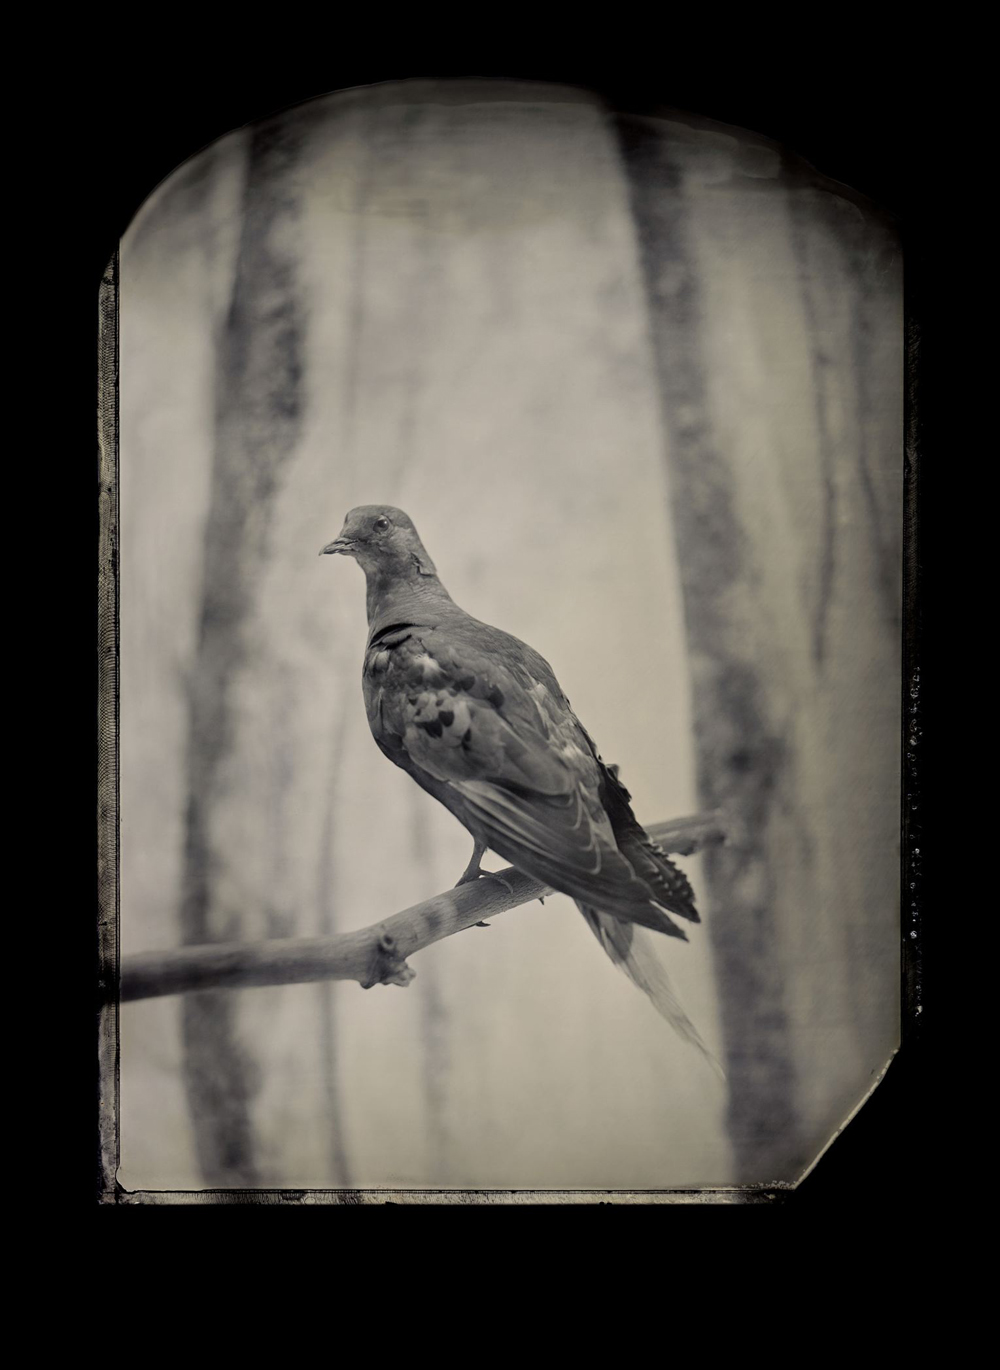 Billions of passenger pigeons once filled the skies of eastern North America. Martha, the last one, died at the Cincinnati Zoo in 1914. Geneticists now think they could resurrect the species. Taxidermic specimen, Smithsonian Institution's National Museum of Natural History, Washington, D.C.